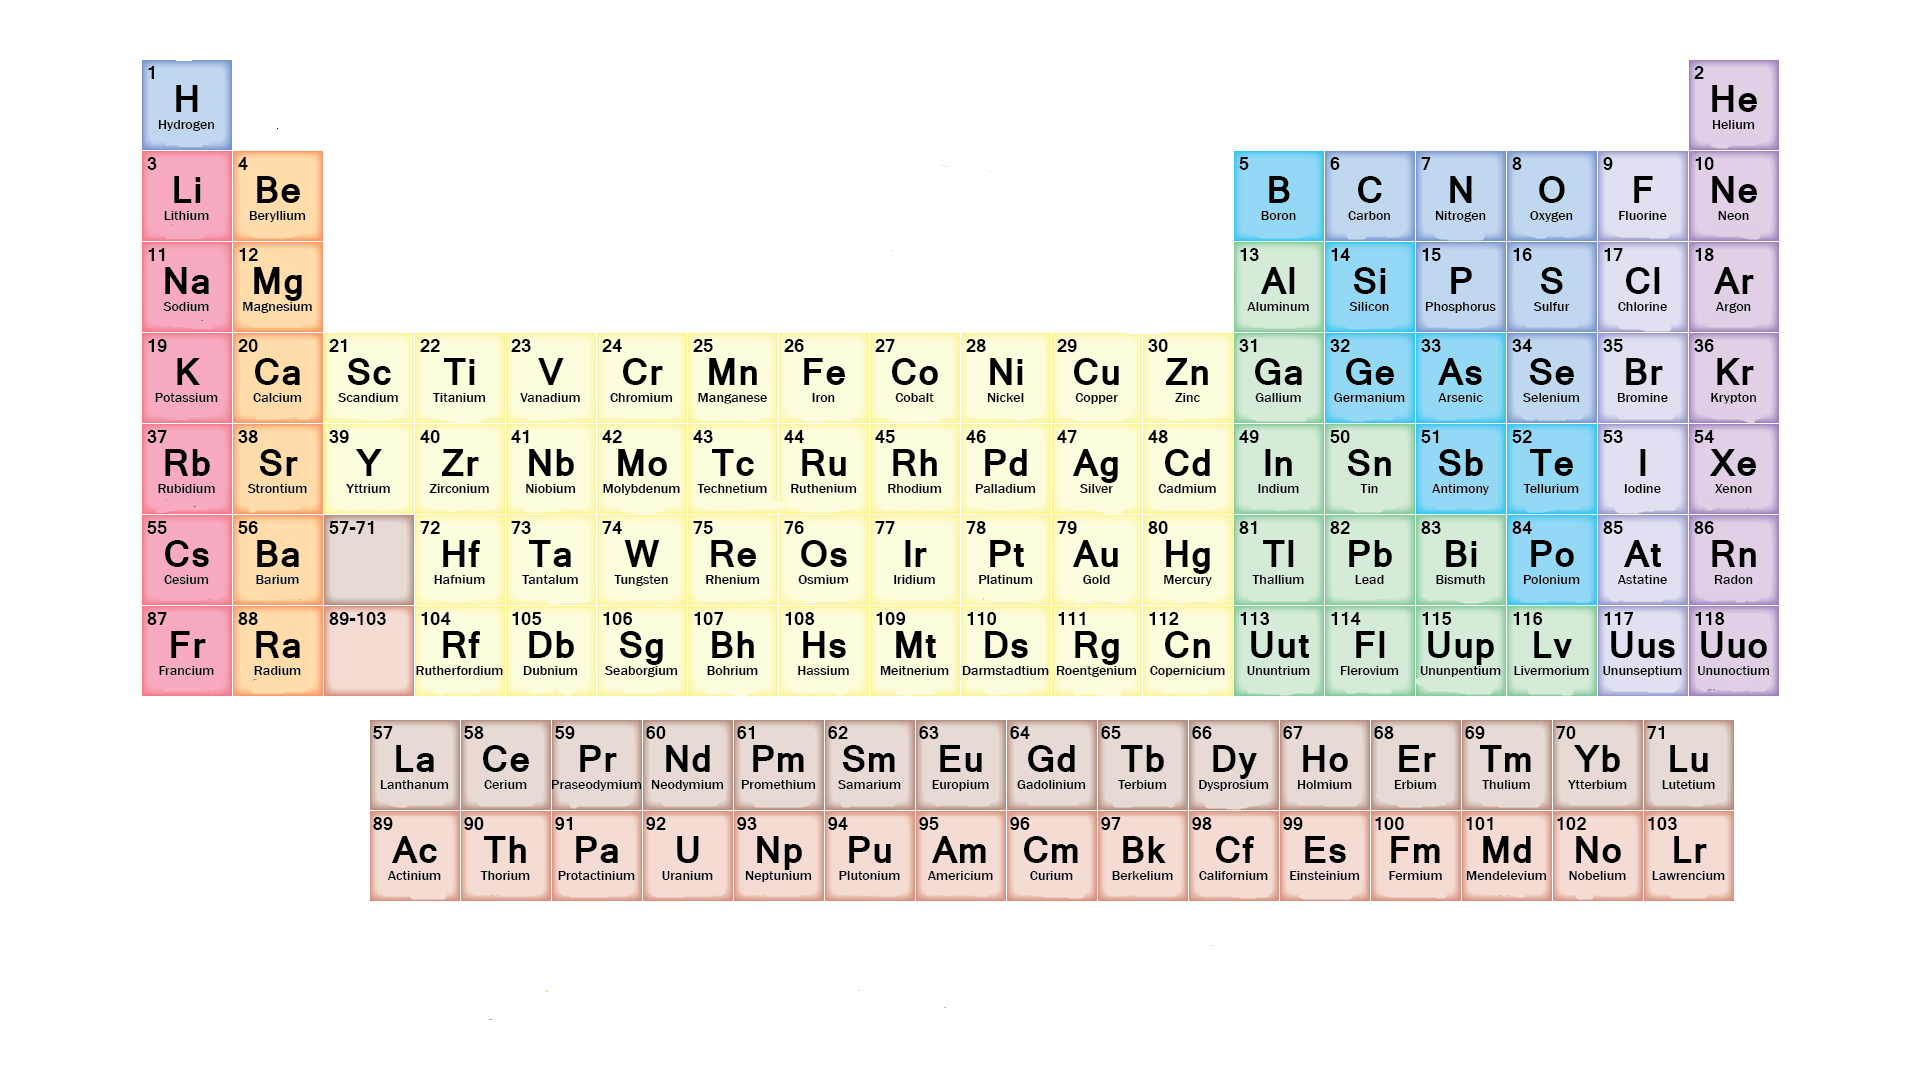 Periodic table cations and anions image collections periodic lowry engineering ion exchange alkalinity arsenic iron hardness manganese nitrate radium sulfate and uranium and are gamestrikefo Images